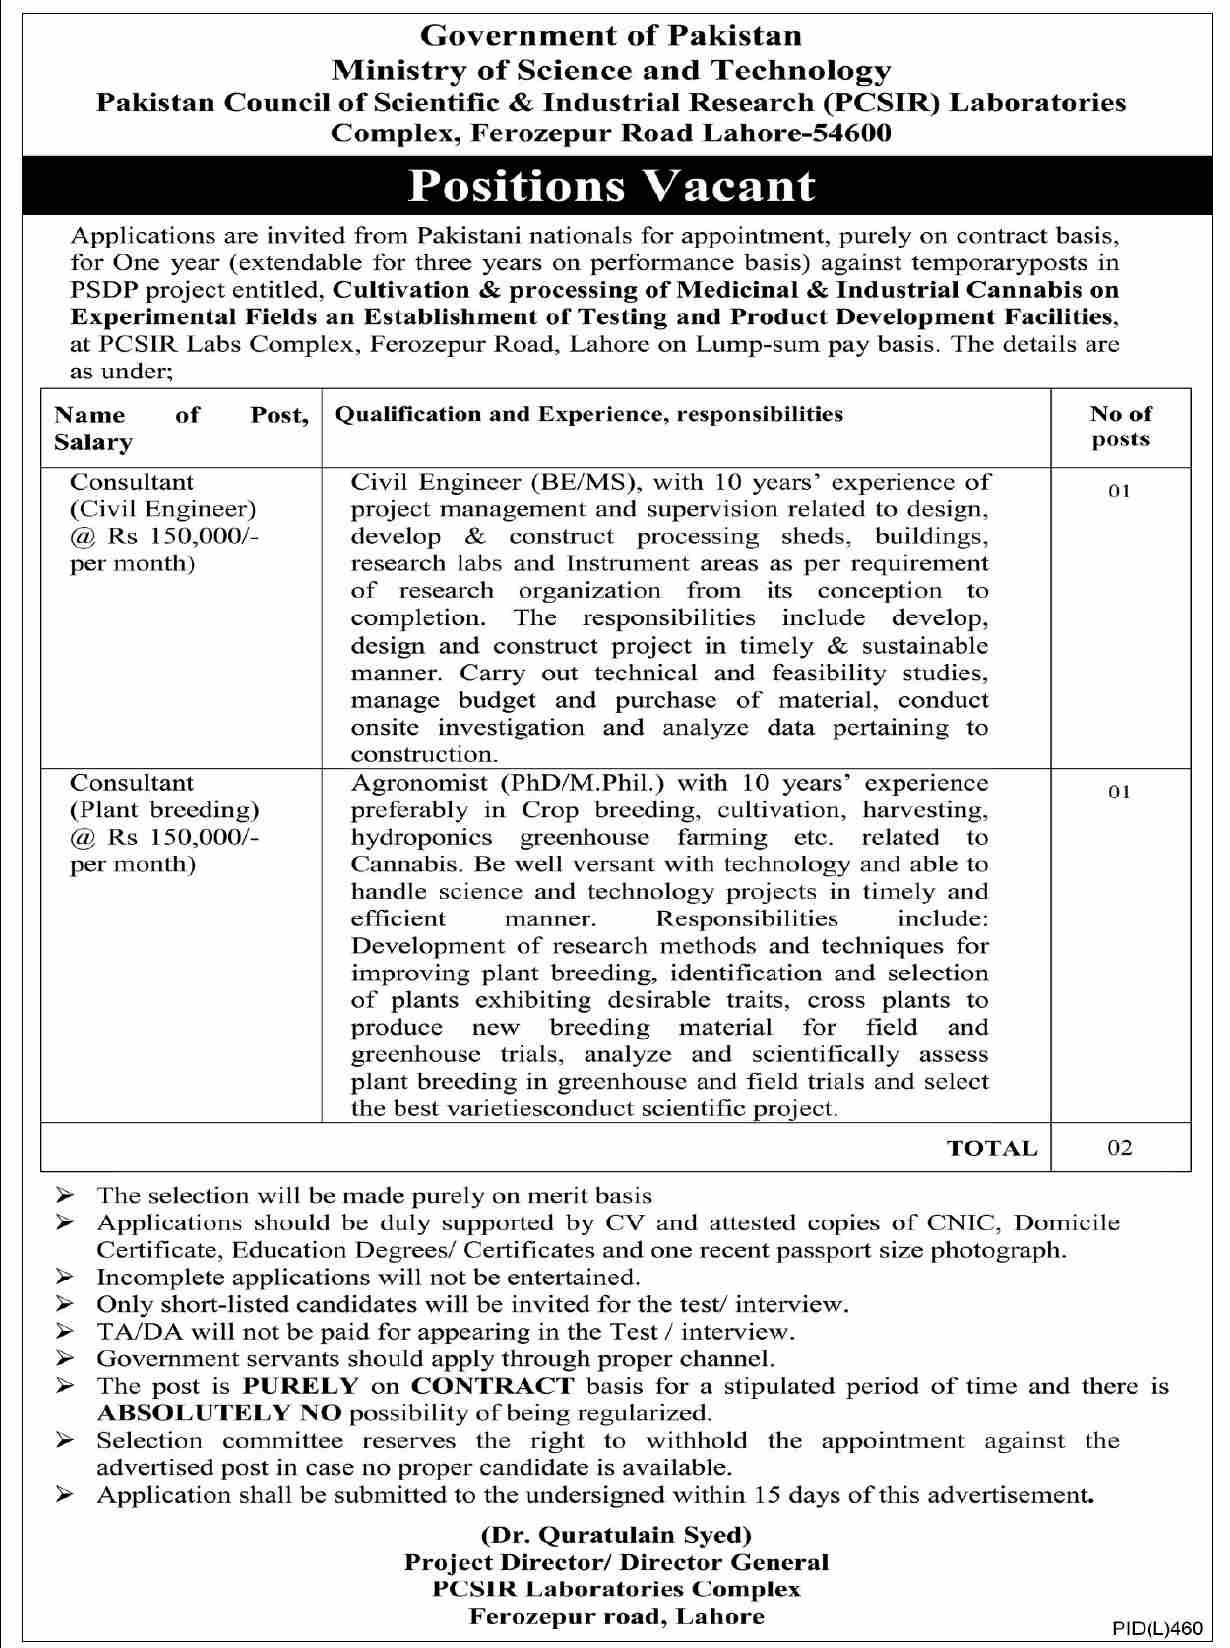 Ministry of Science & Technology Jobs 2021 For Consultants